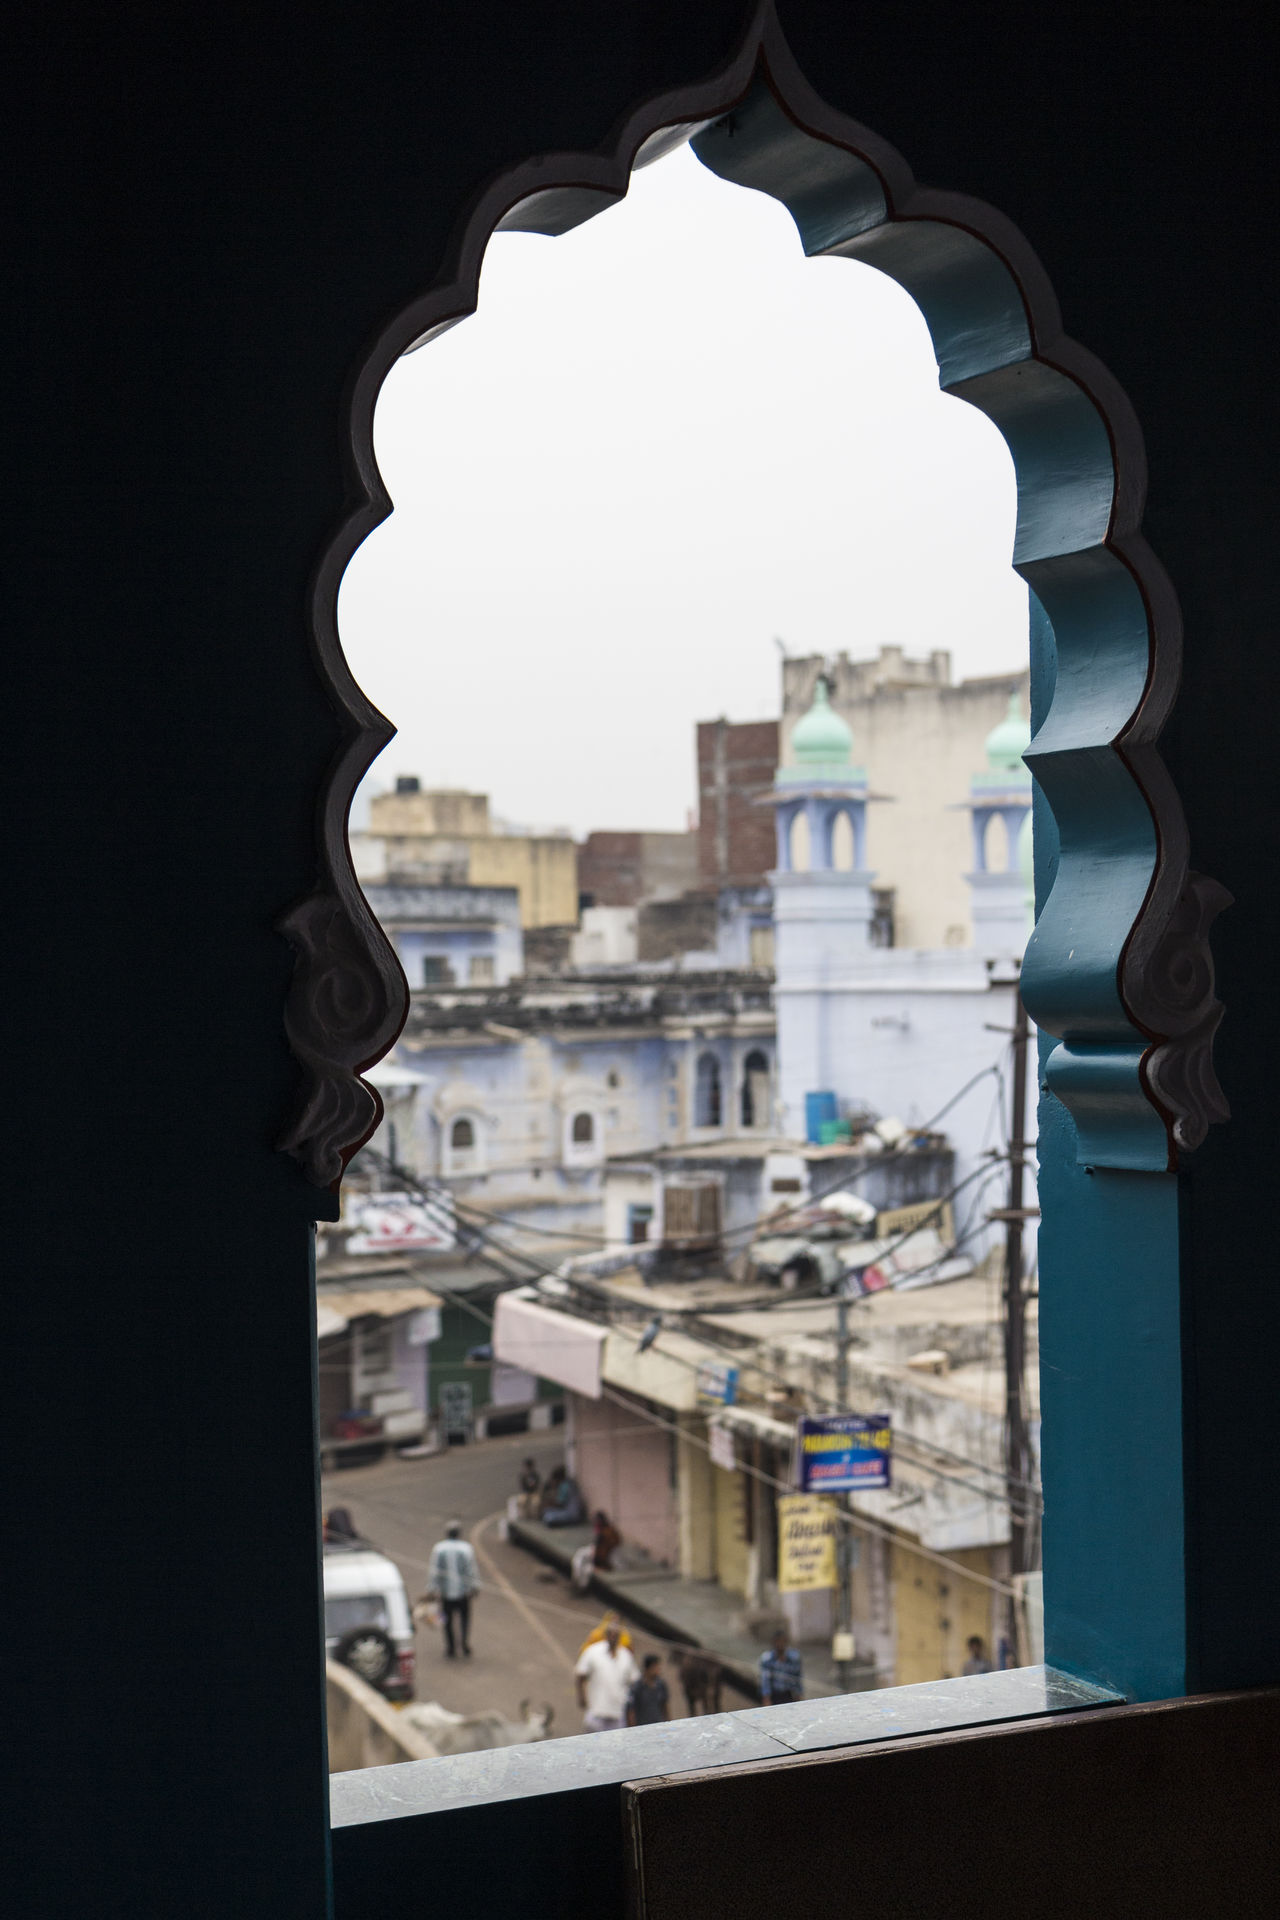 view of Pushkar city from art window Architecture Art Art Window City Day Exterior Hinduism Holy City Indiapictures Pushkar Residential District Residential Structure Tourism Travel Destination Window View